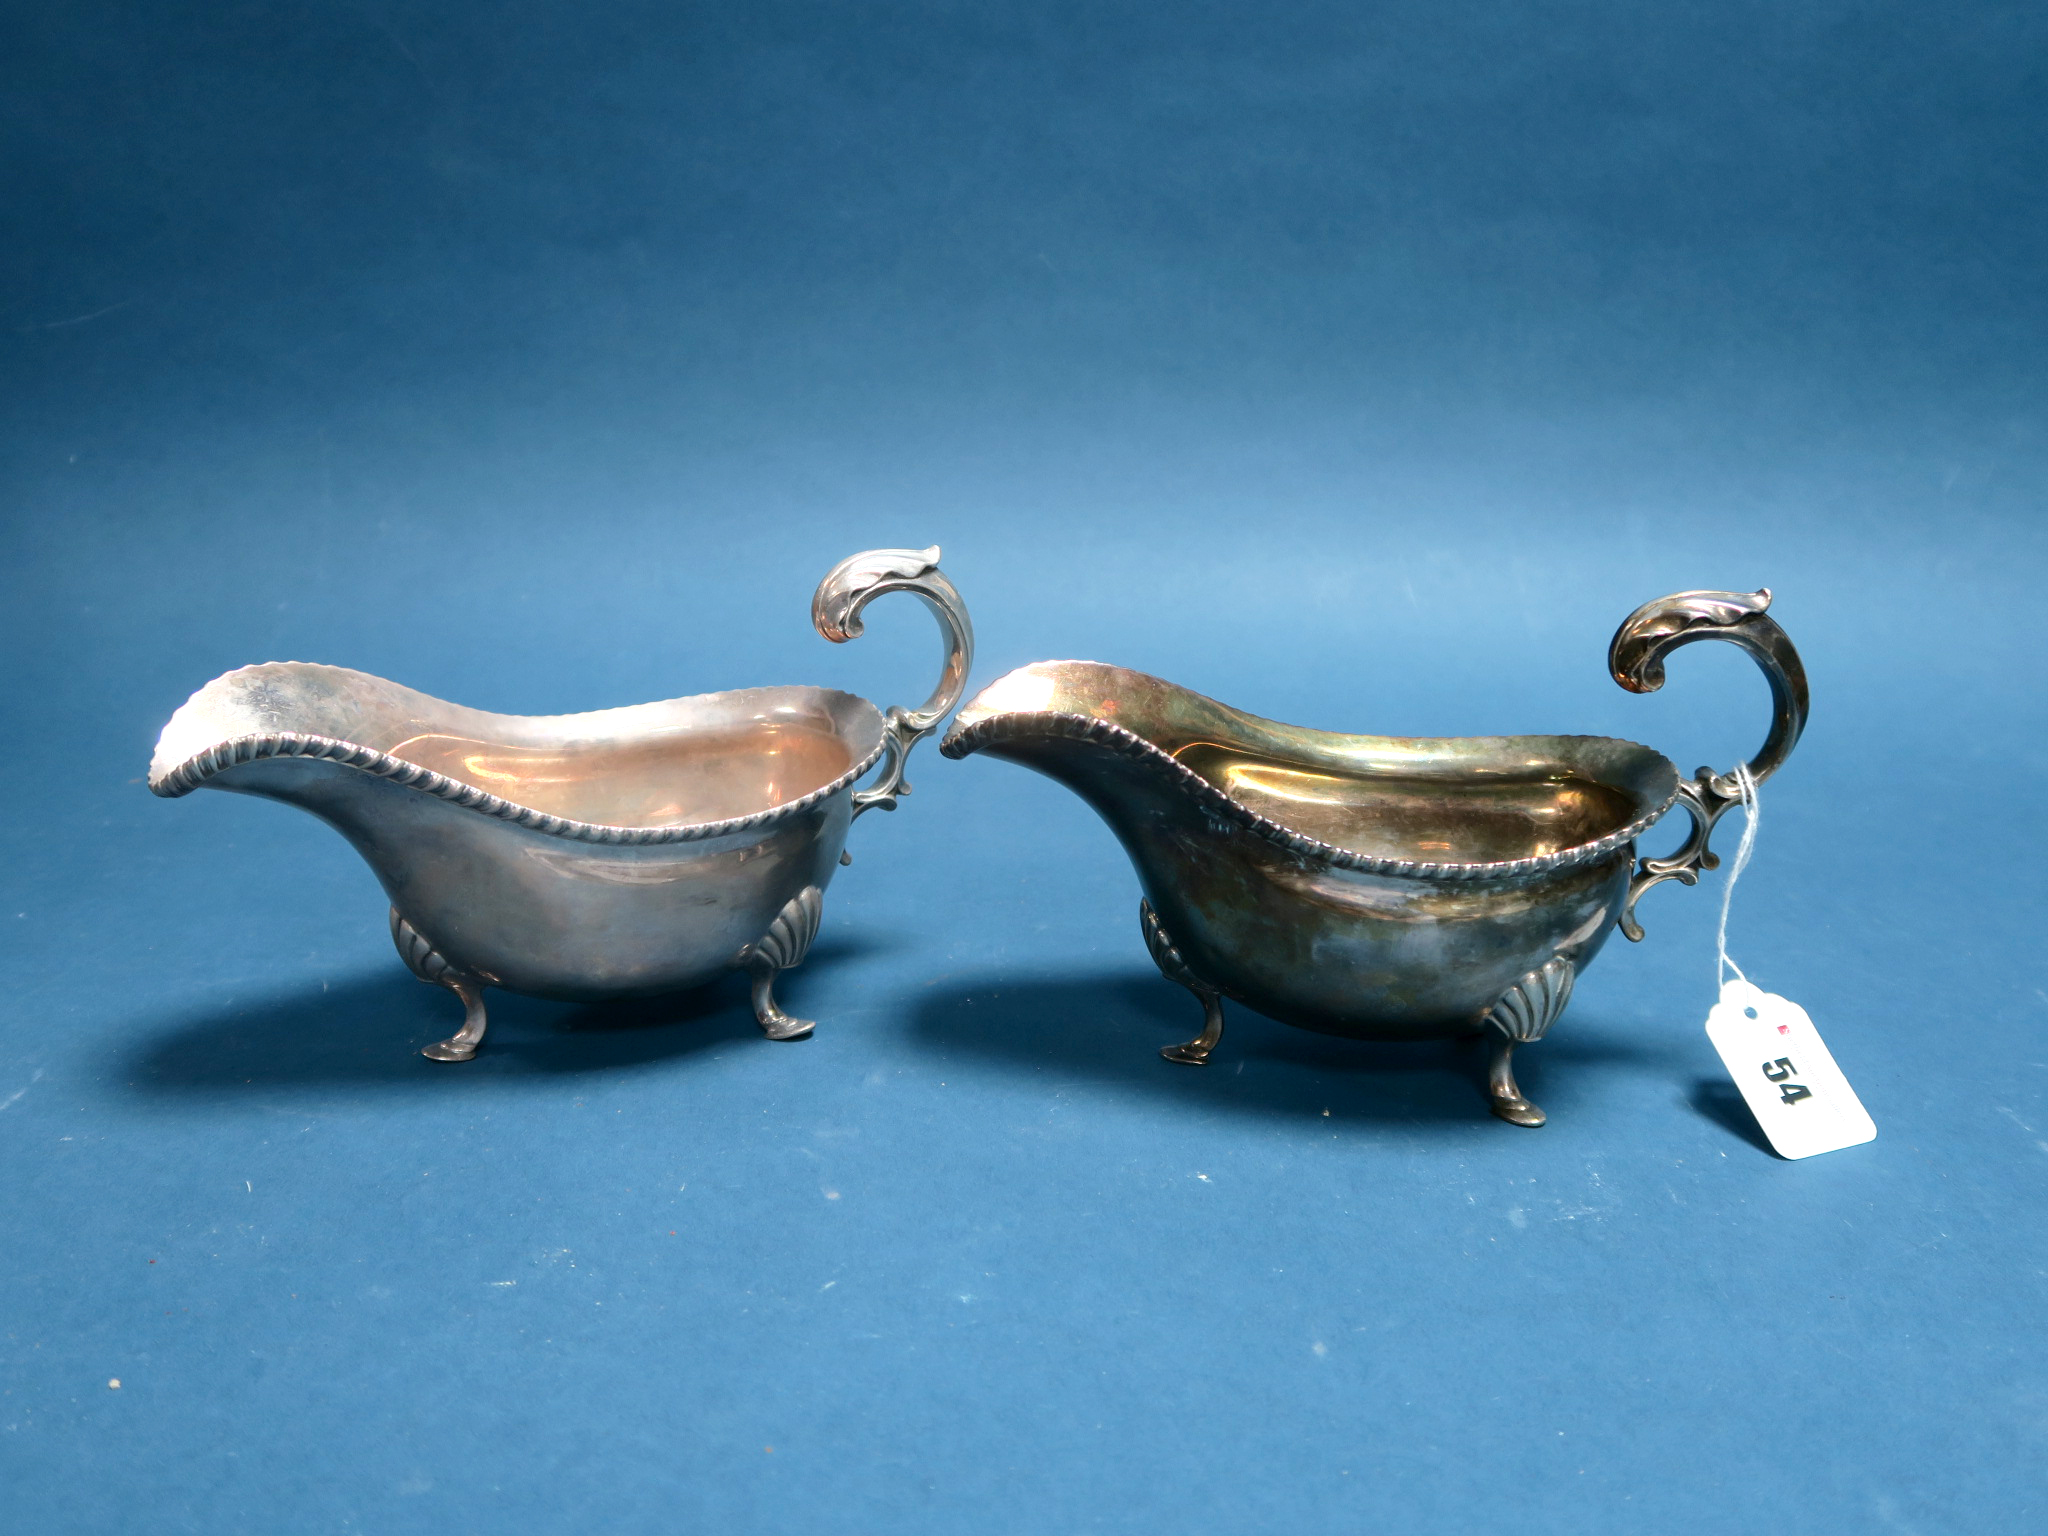 Lot 54 - A Pair of Large Hallmarked Silver Sauce Boats, Goldsmiths & Silversmiths Co Ltd, London 1909, each